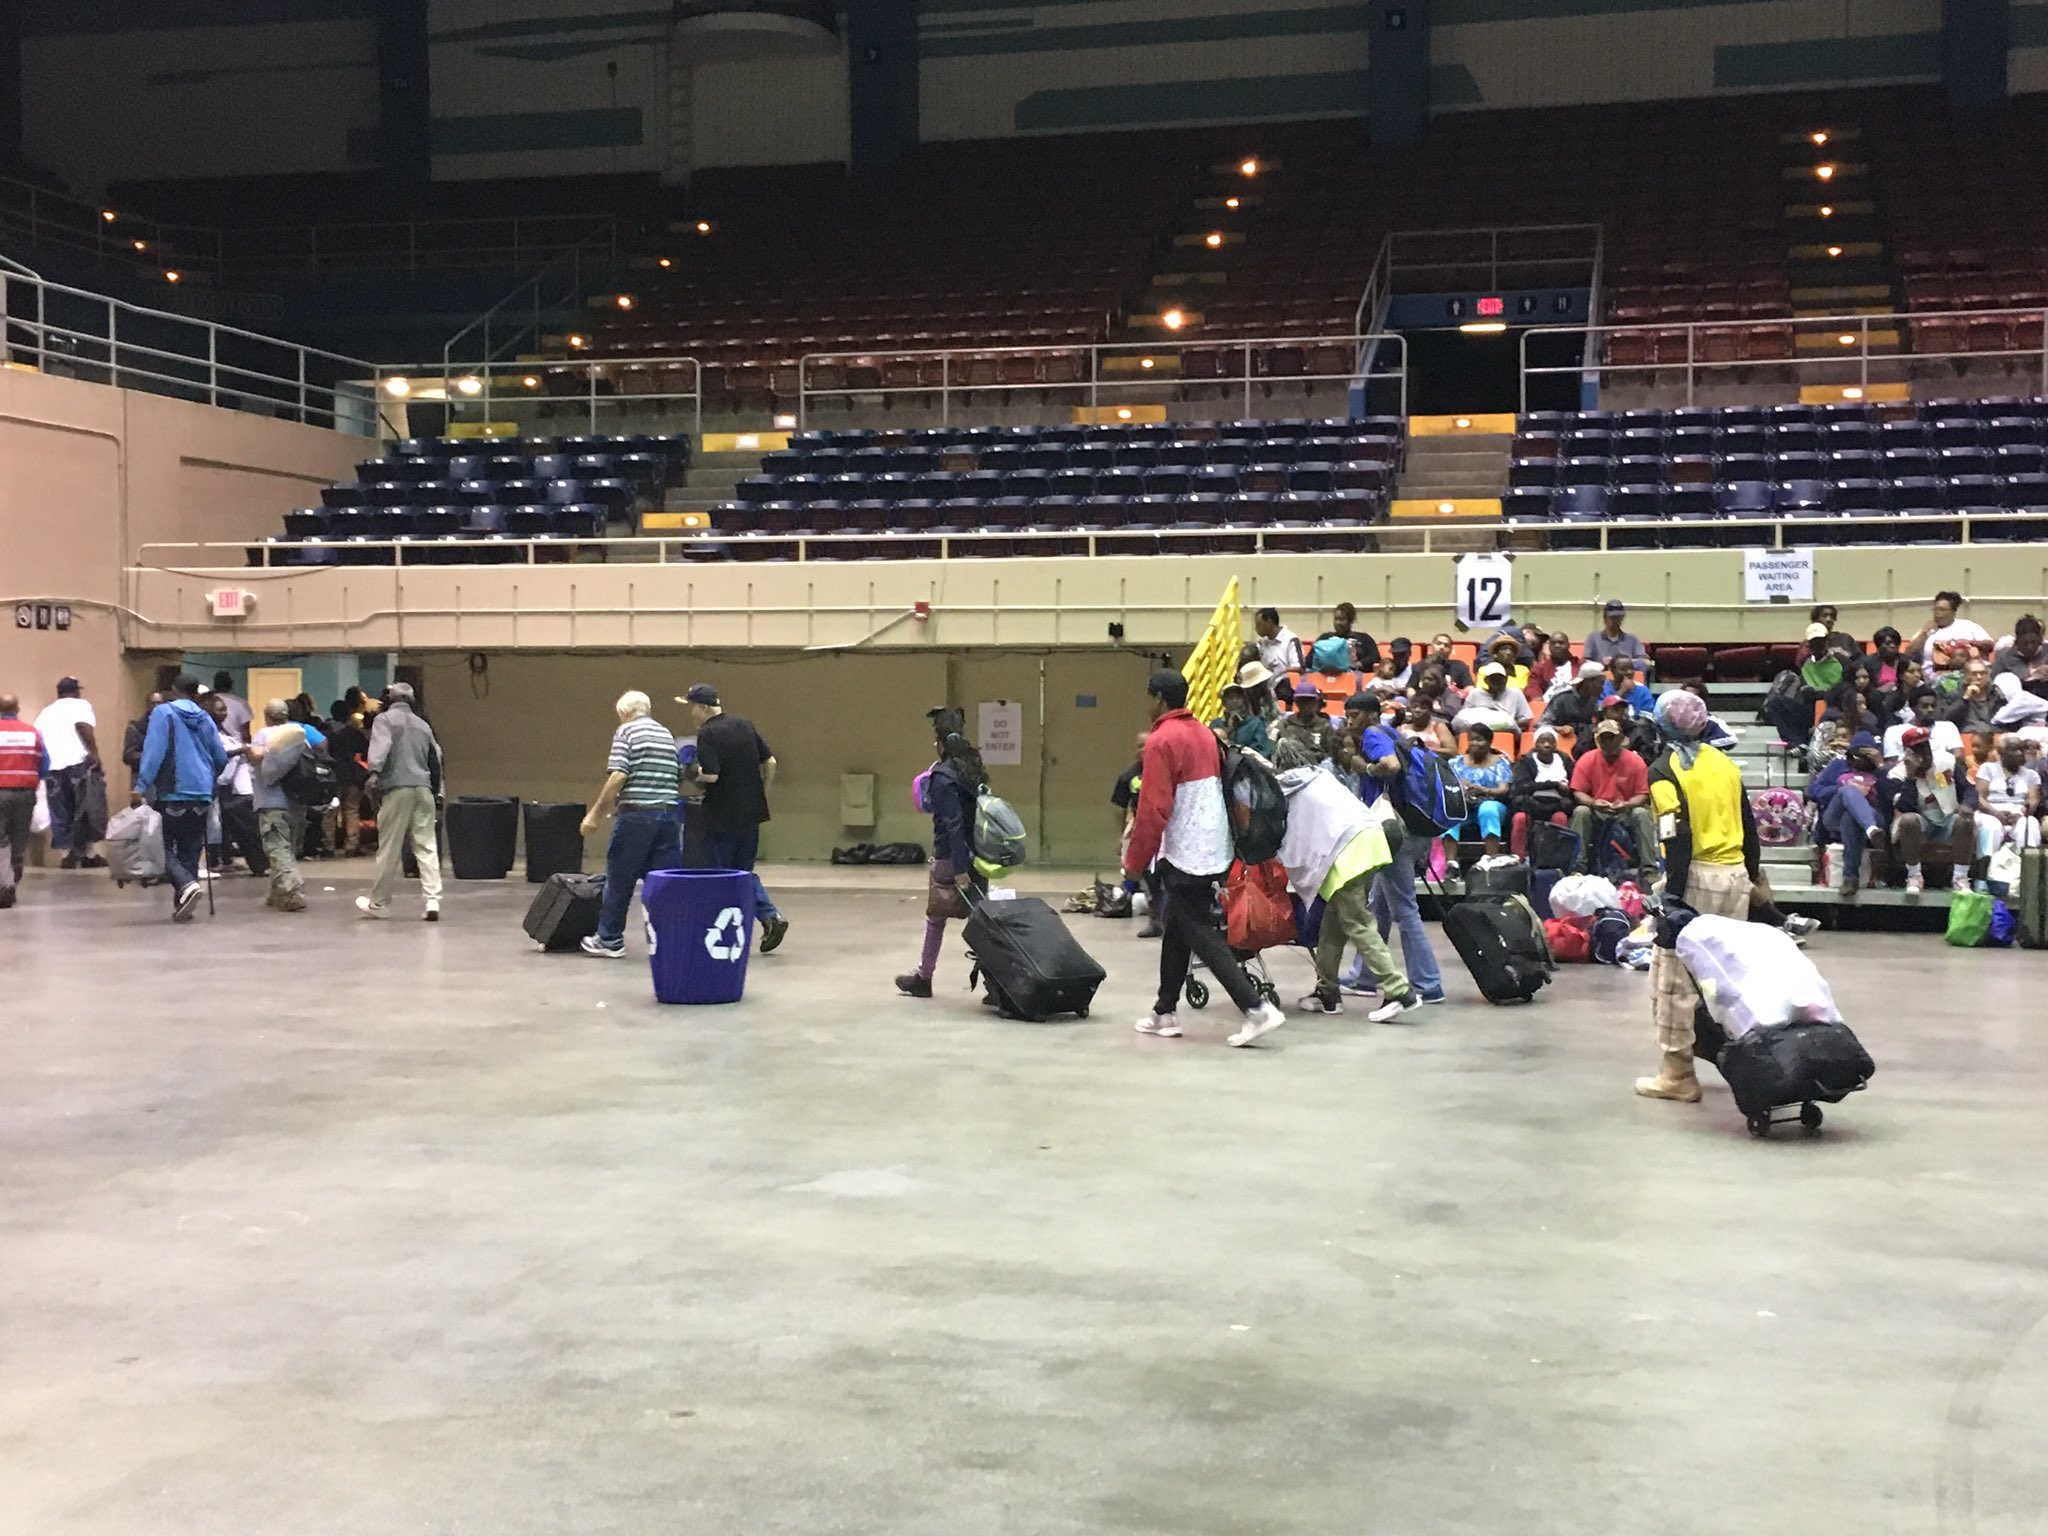 People evacuating ahead of Hurricane Irma at the Savannah Civic Center on Saturday. (WTGS/Robert Catanese)